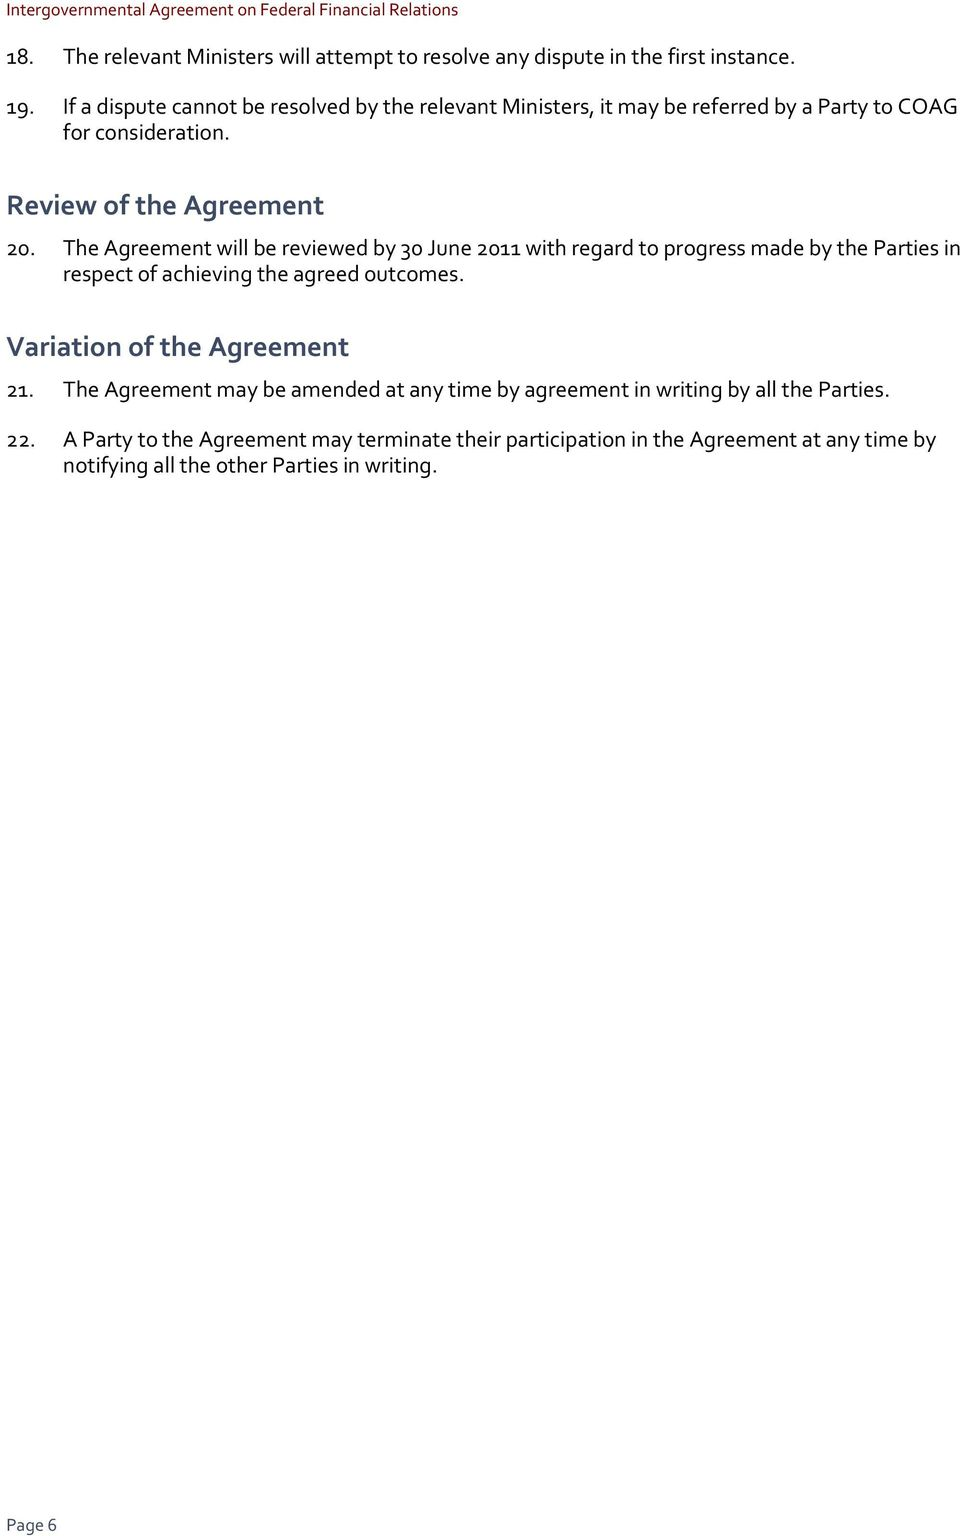 The Agreement will be reviewed by 30 June 2011 with regard to progress made by the Parties in respect of achieving the agreed outcomes. Variation of the Agreement 21.